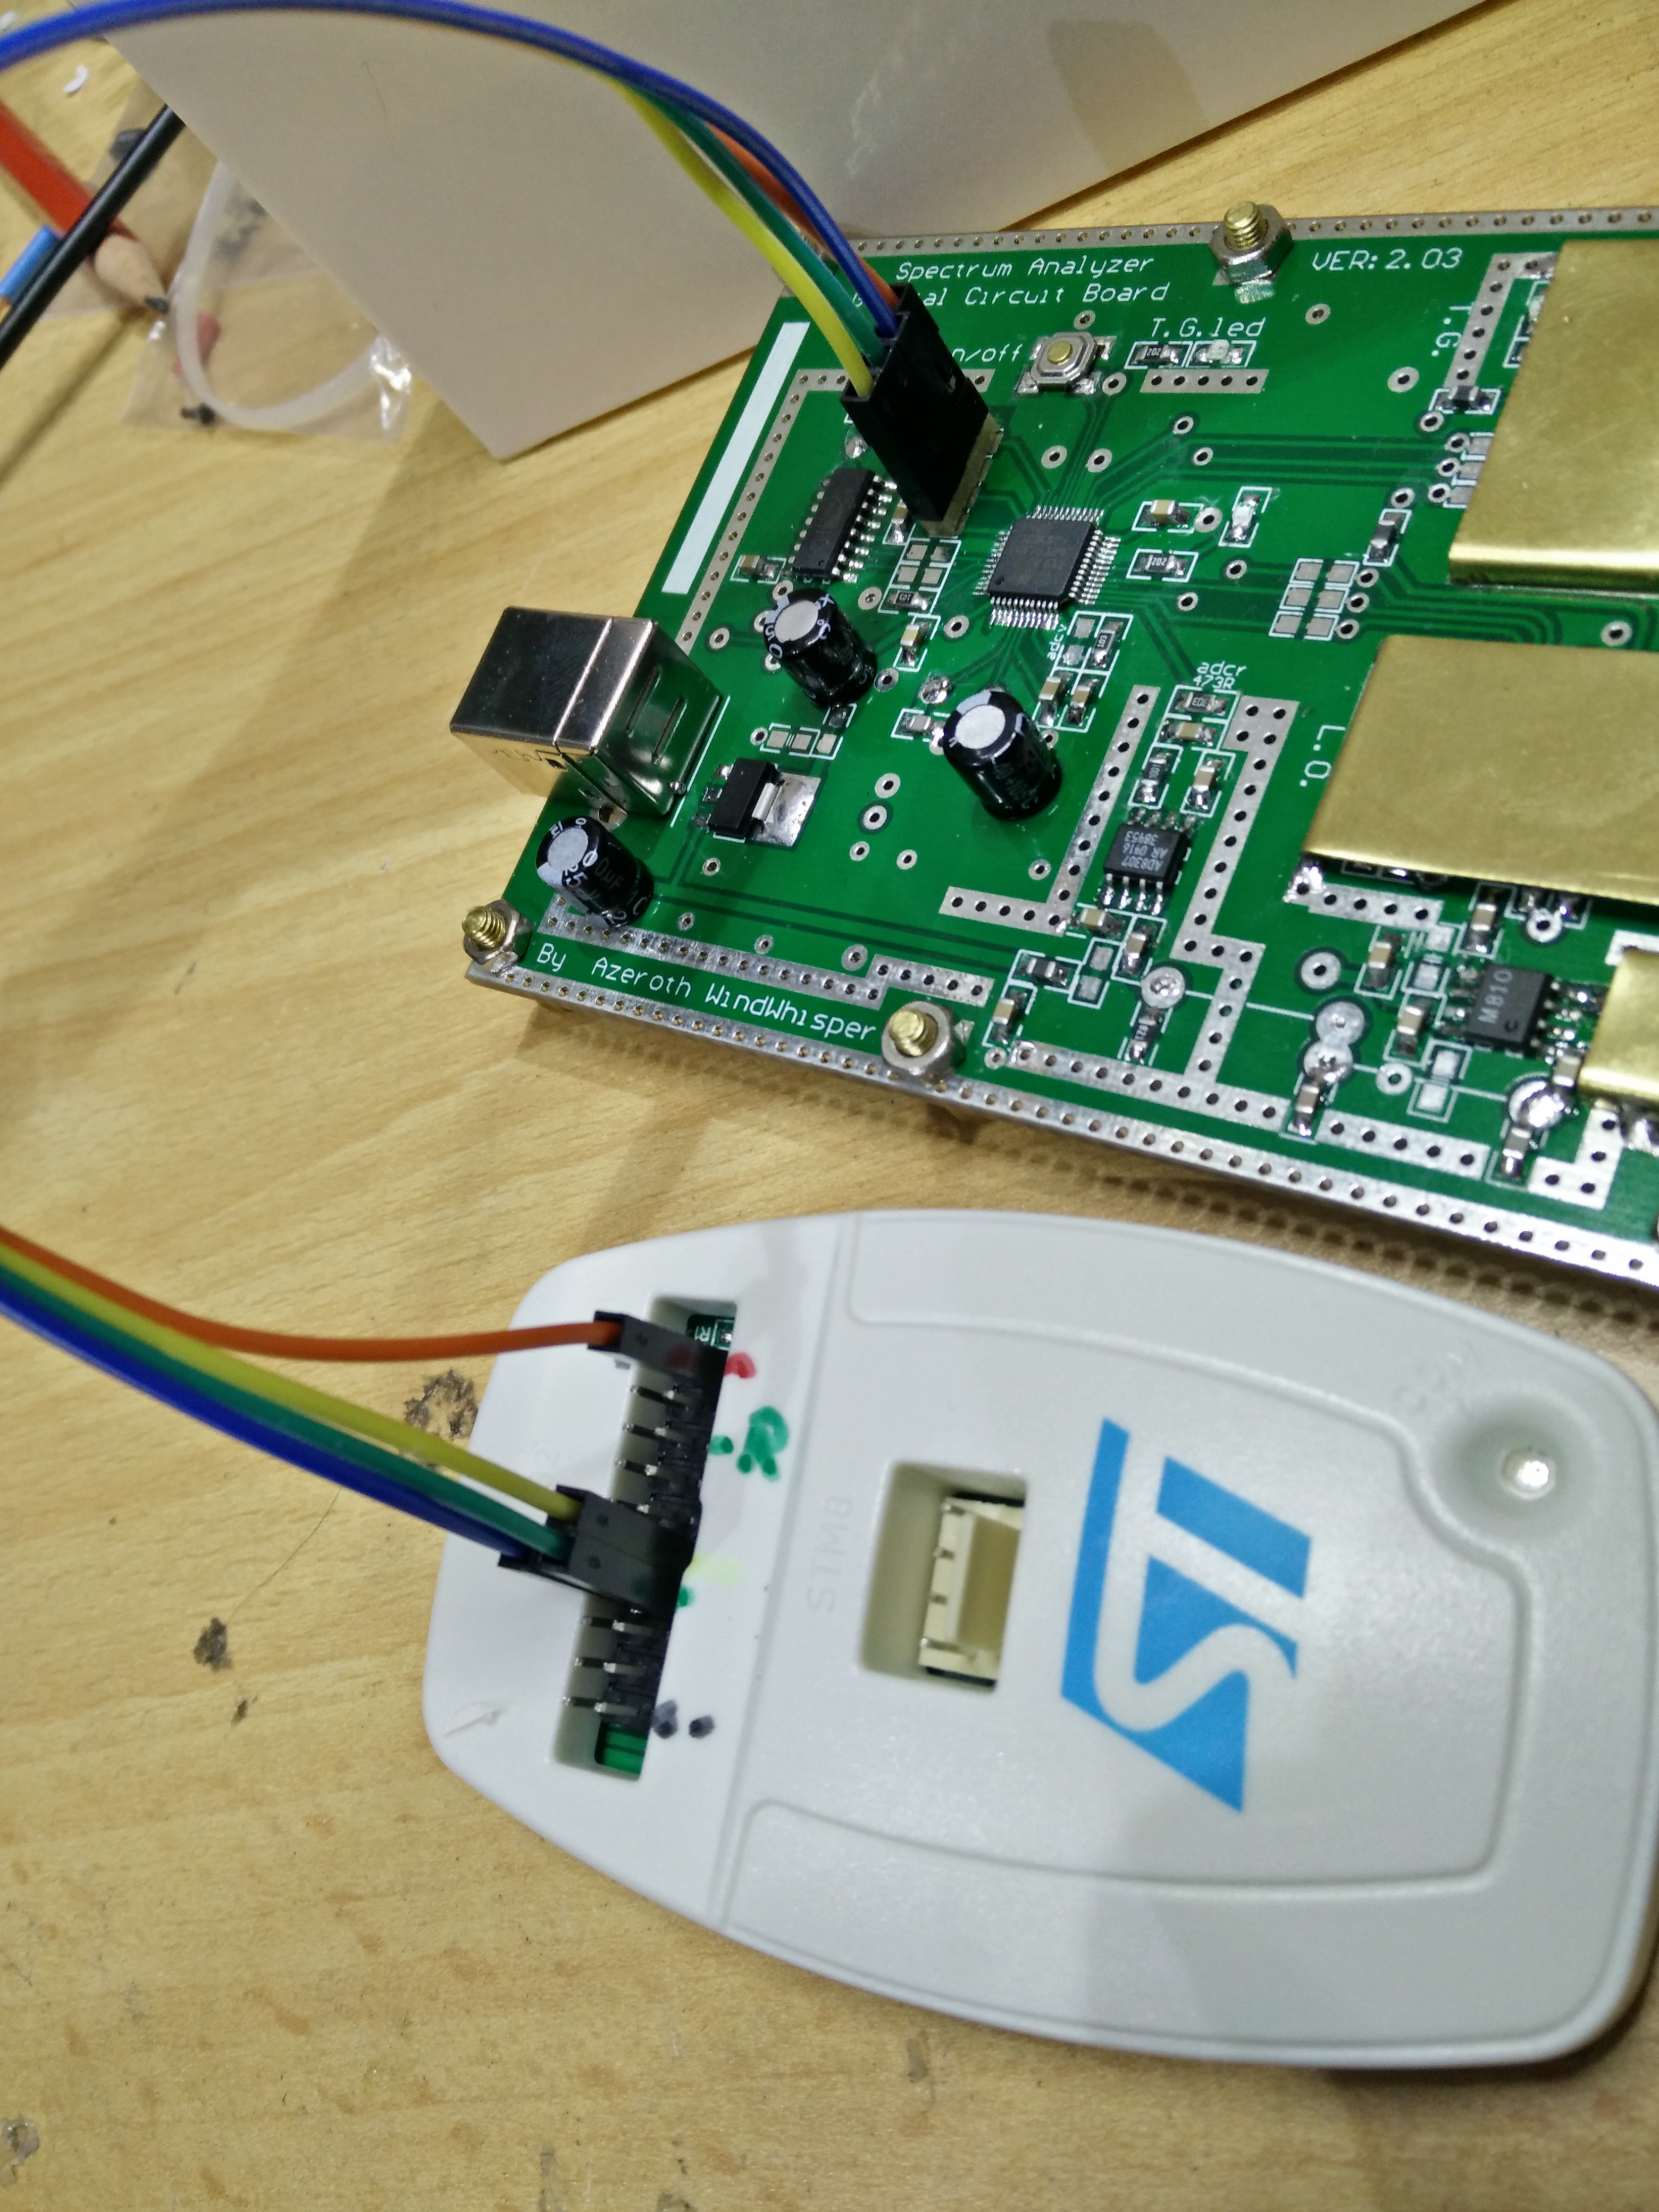 GitHub - joseluu/D6_firmware: Firmware for the D6 Simple